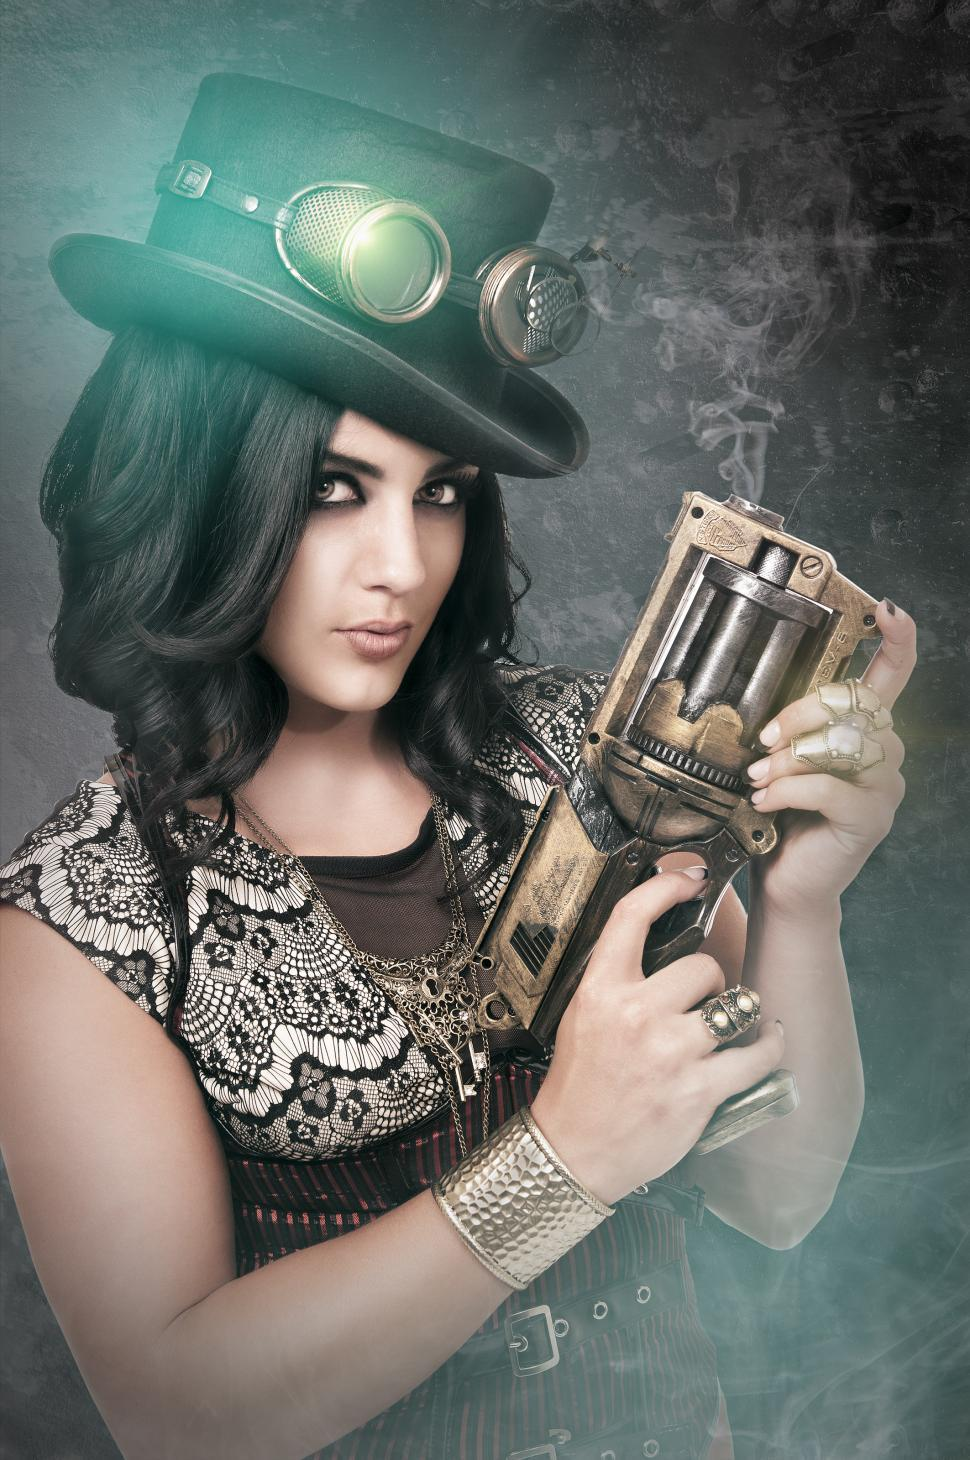 Download Free Stock Photo of Steampunk girl with gun